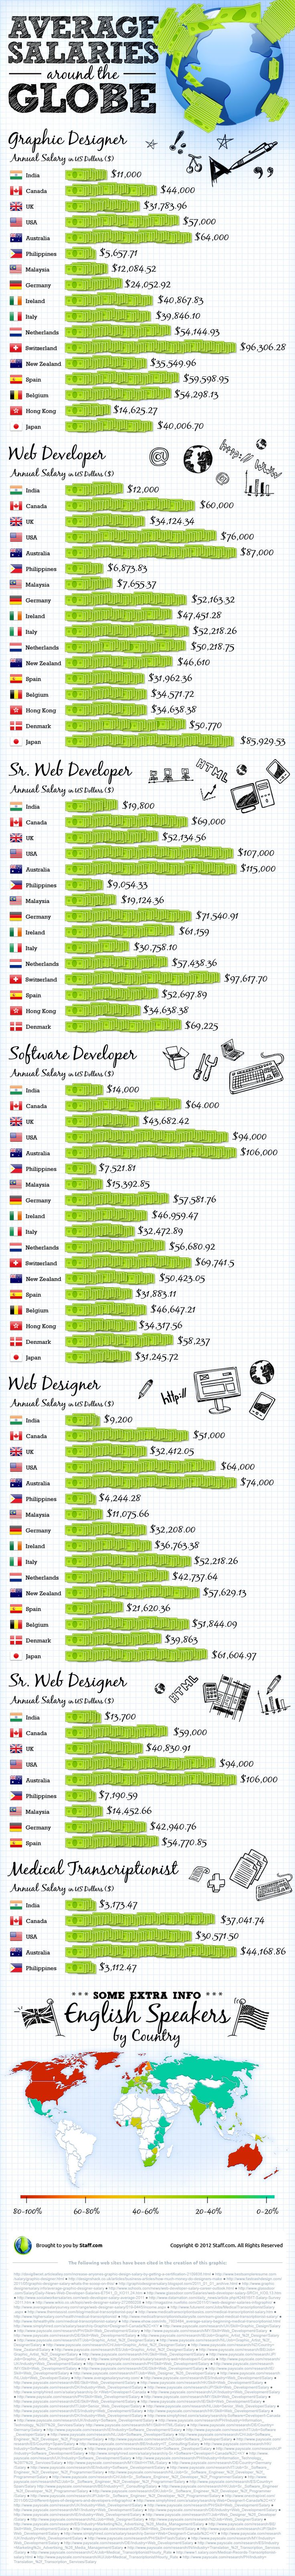 salaries in different countries